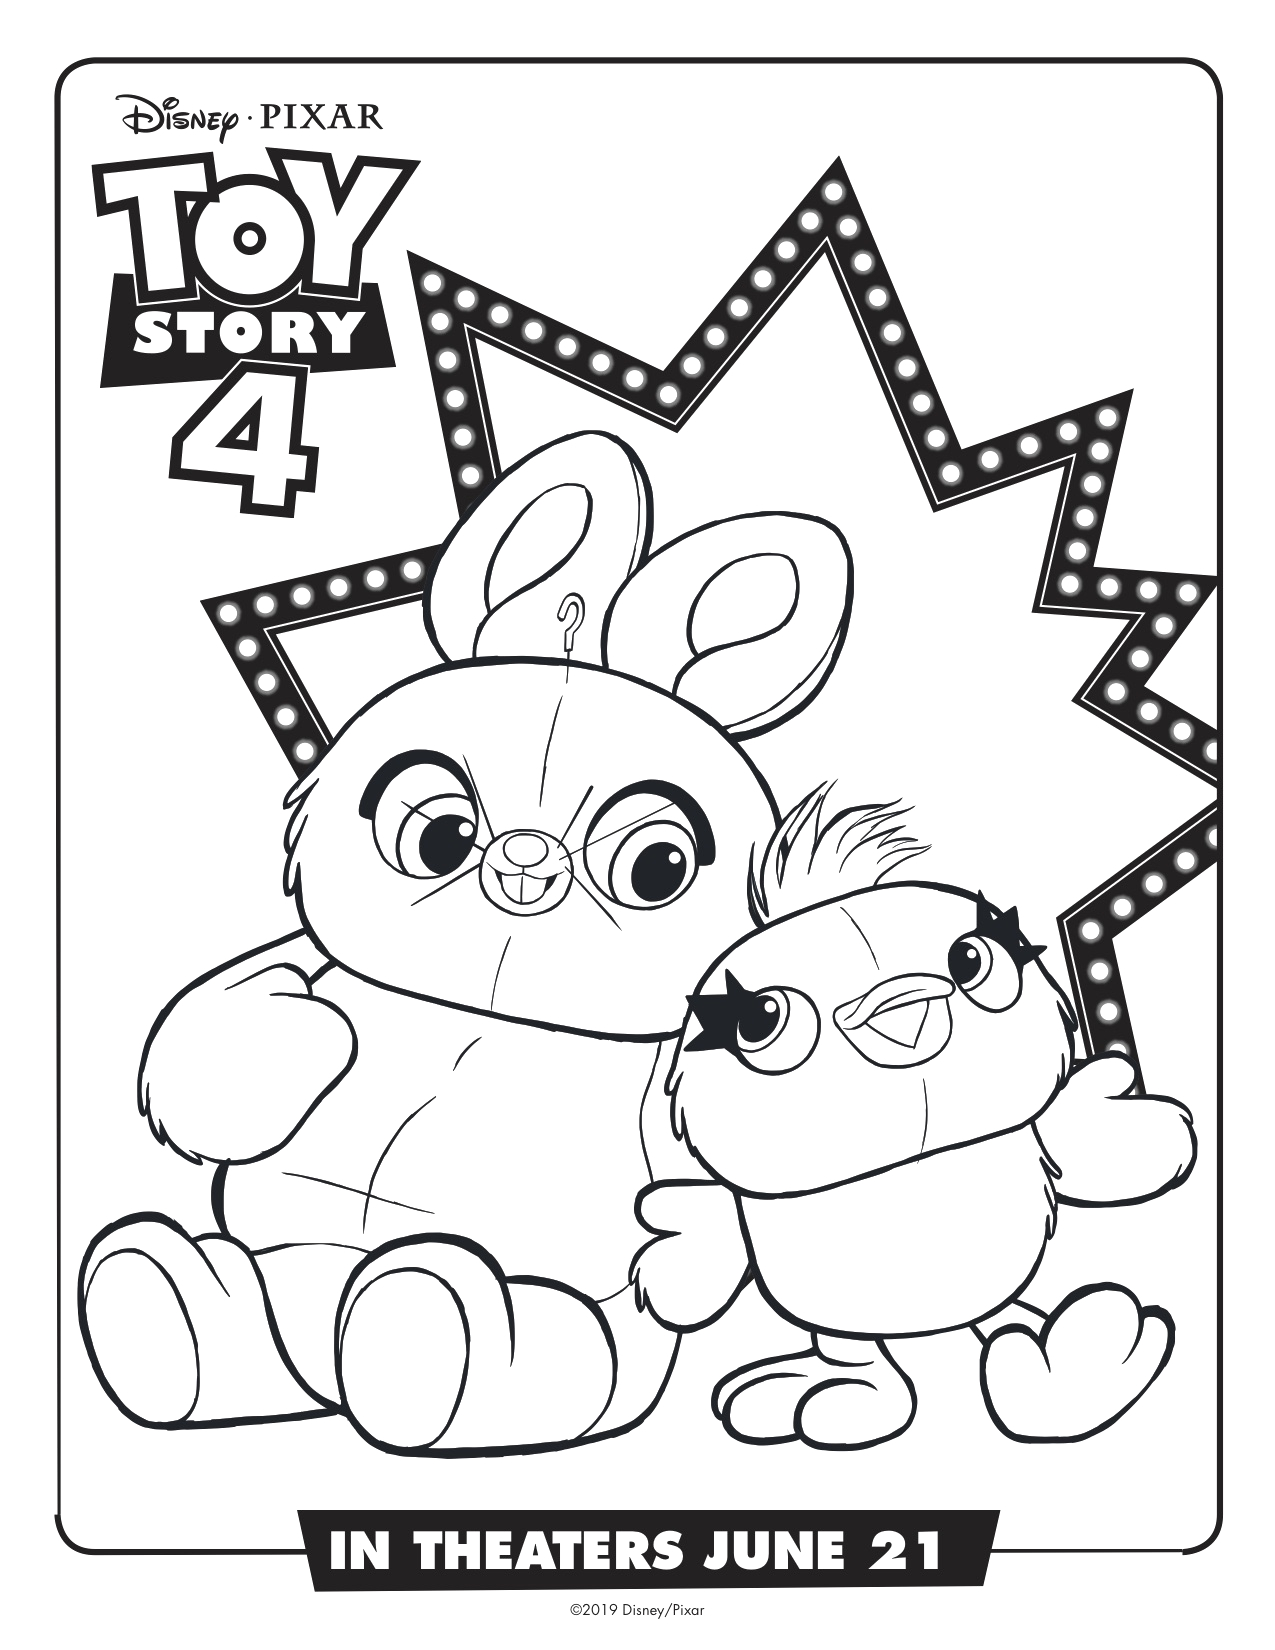 Ducky and Bunny toy Story 4 Coloring Pages toy Story 4 Ducky and Bunny Printable Coloring Page Simply